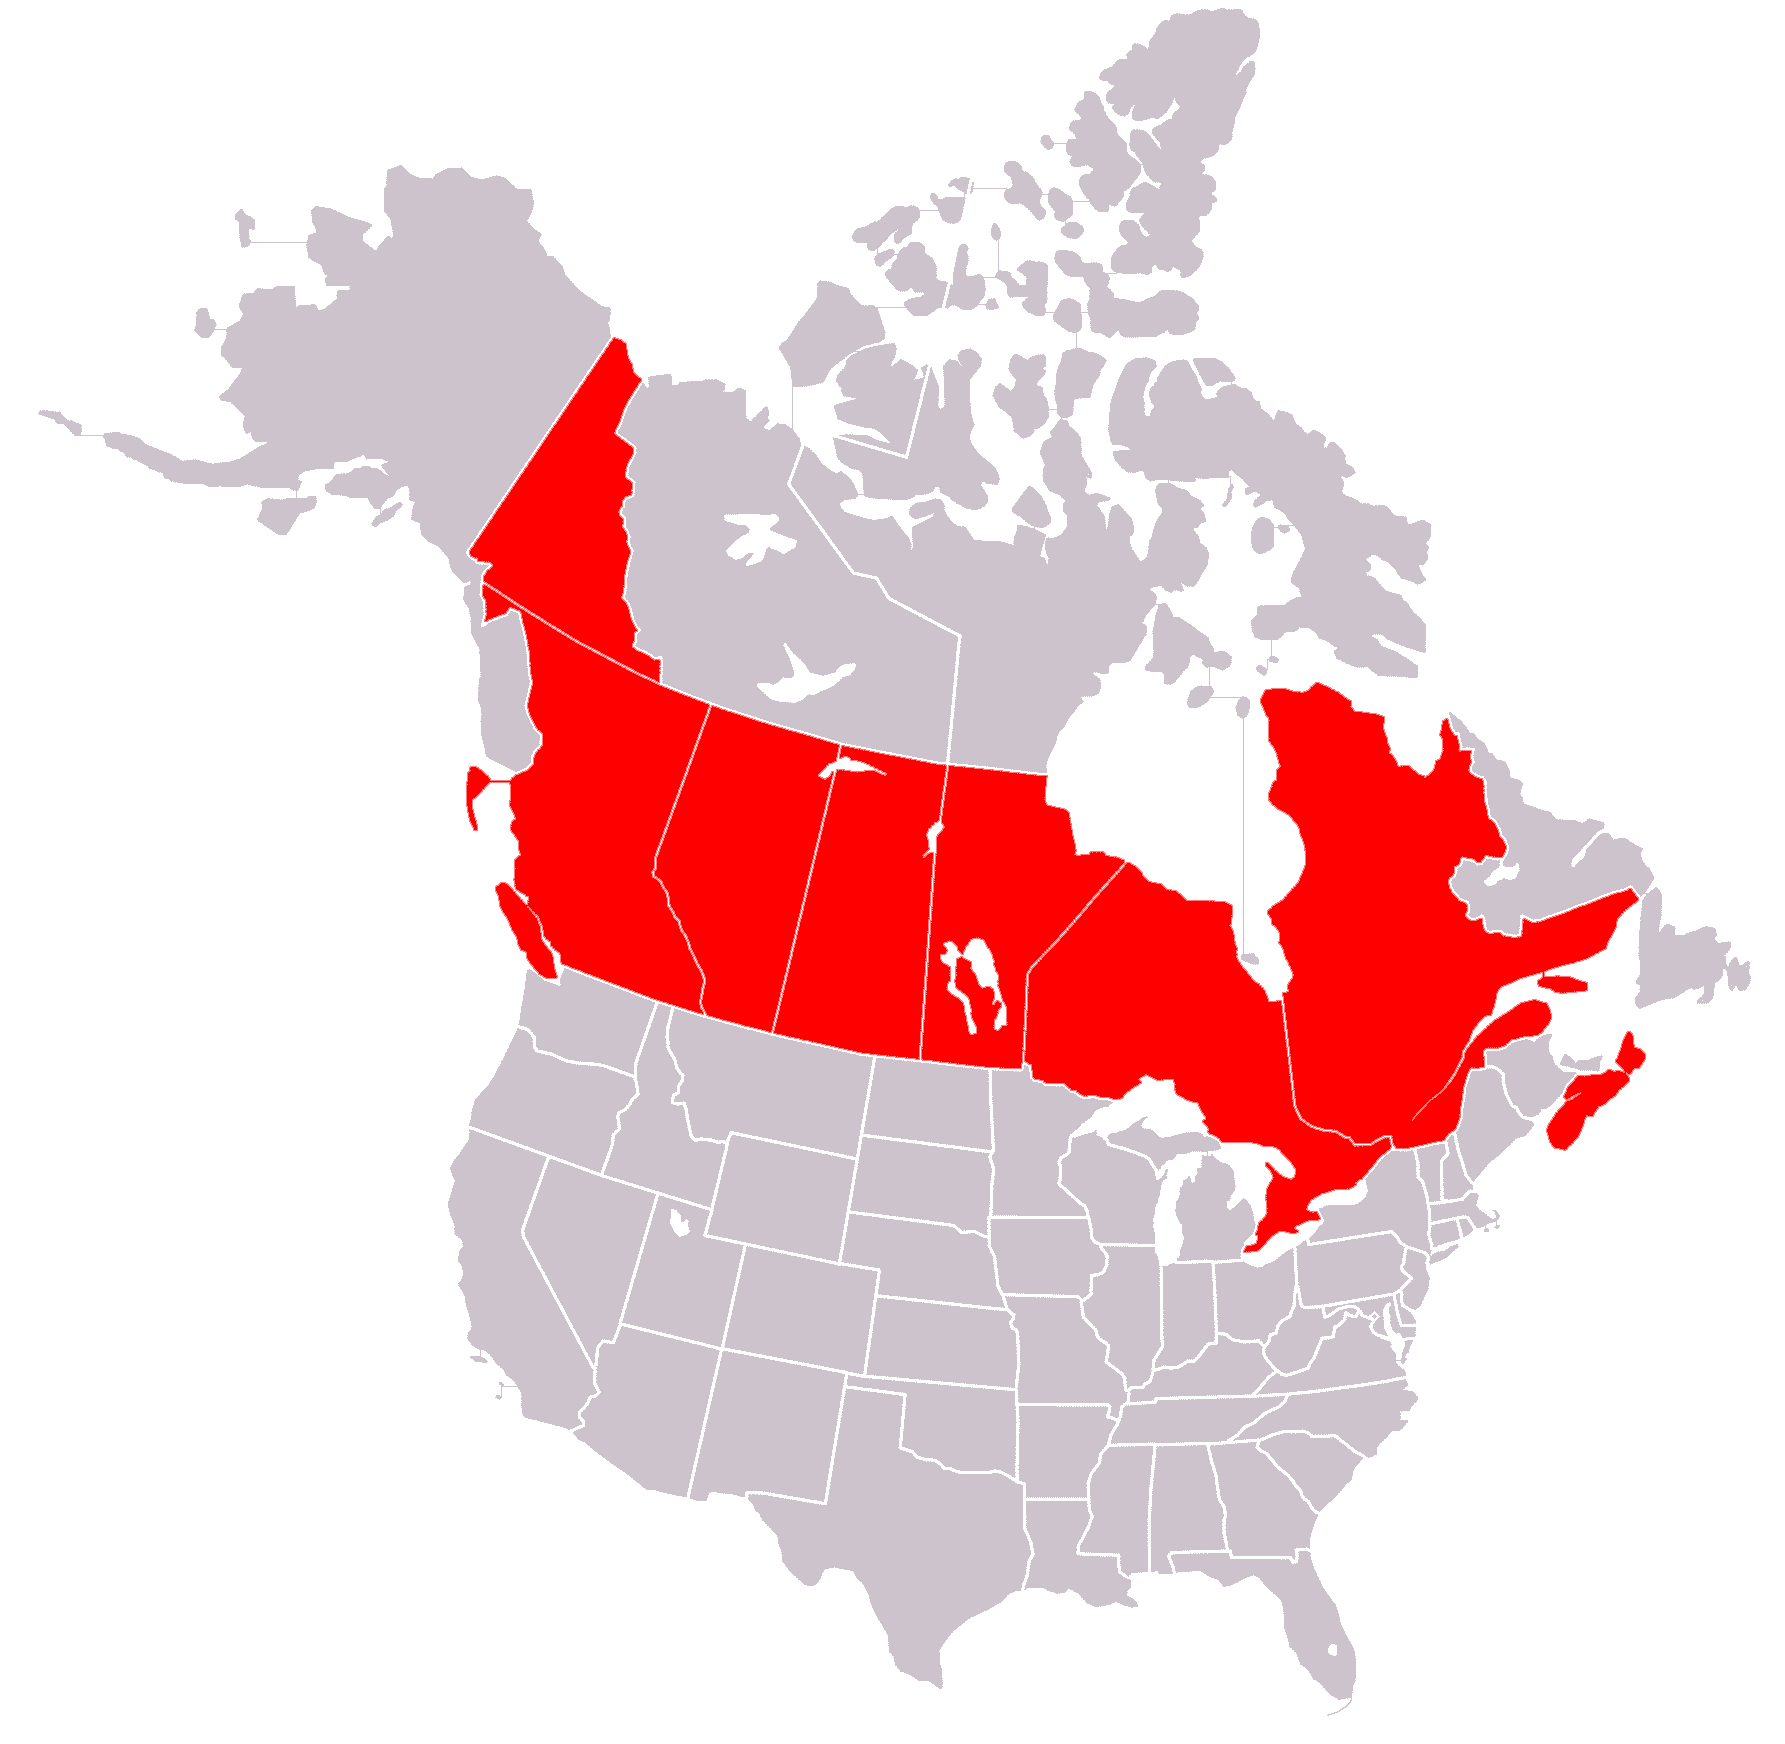 FileBlankMapUSAstatesCanadaprovinces Highlighting OCA - Canada usa map states and provinces